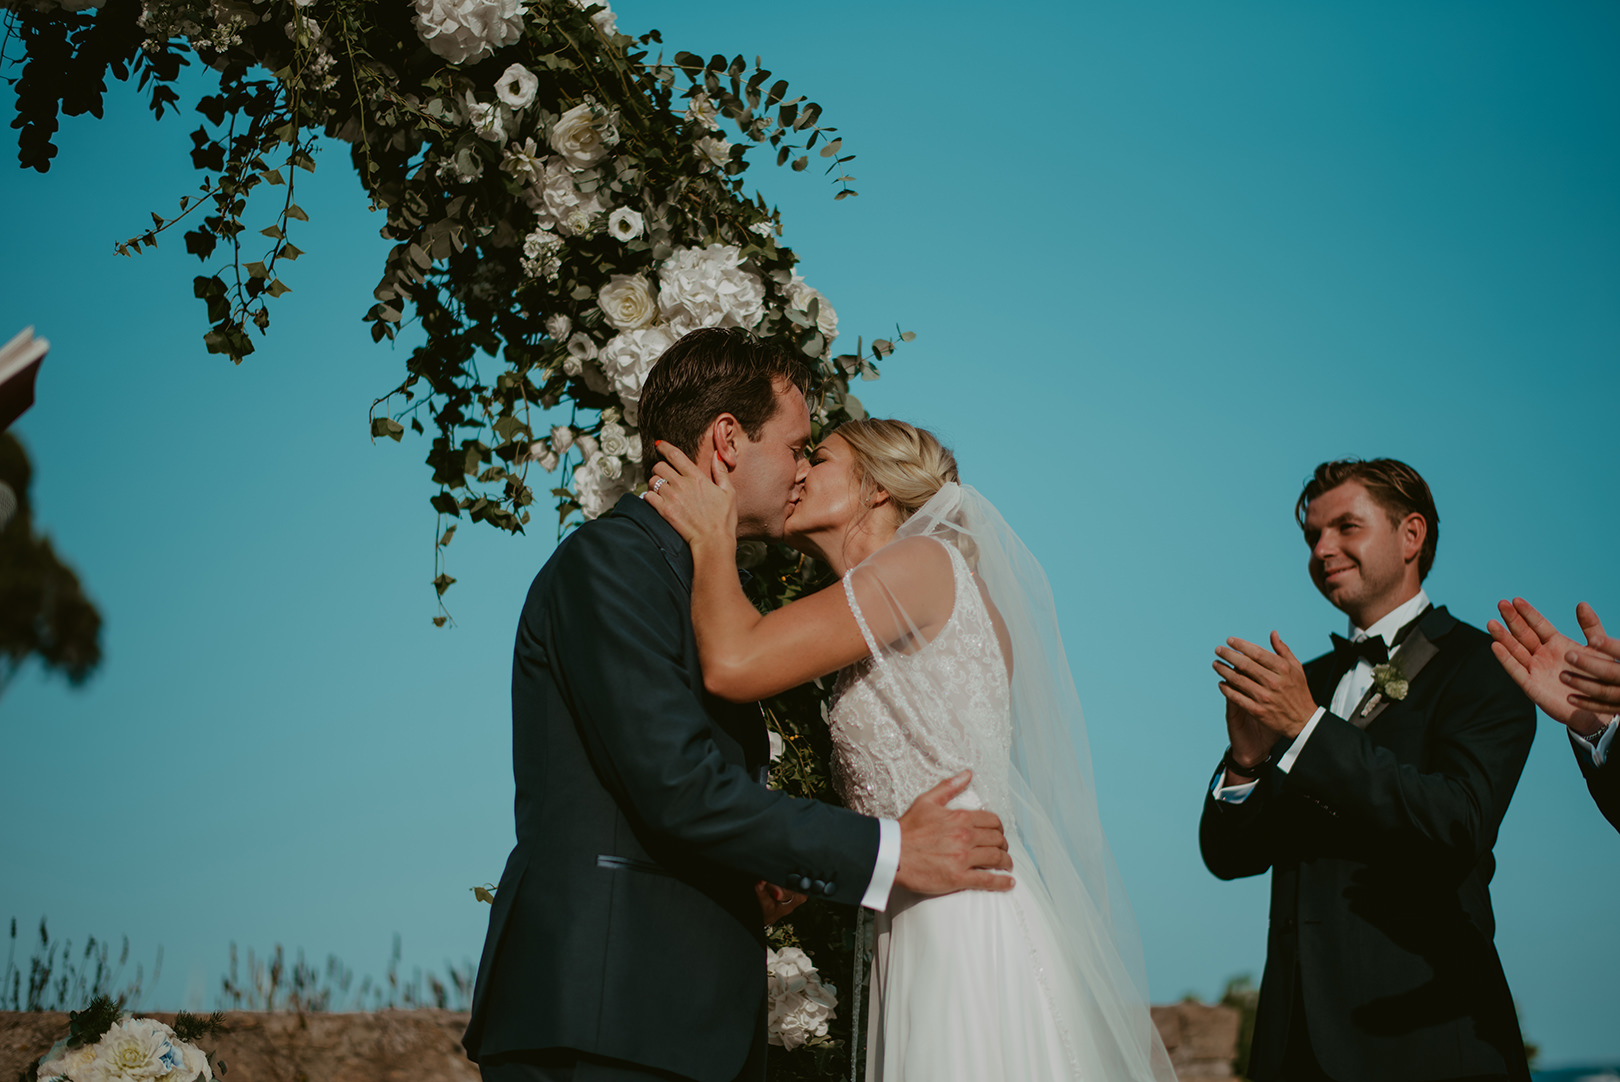 First kiss at wedding in South of France